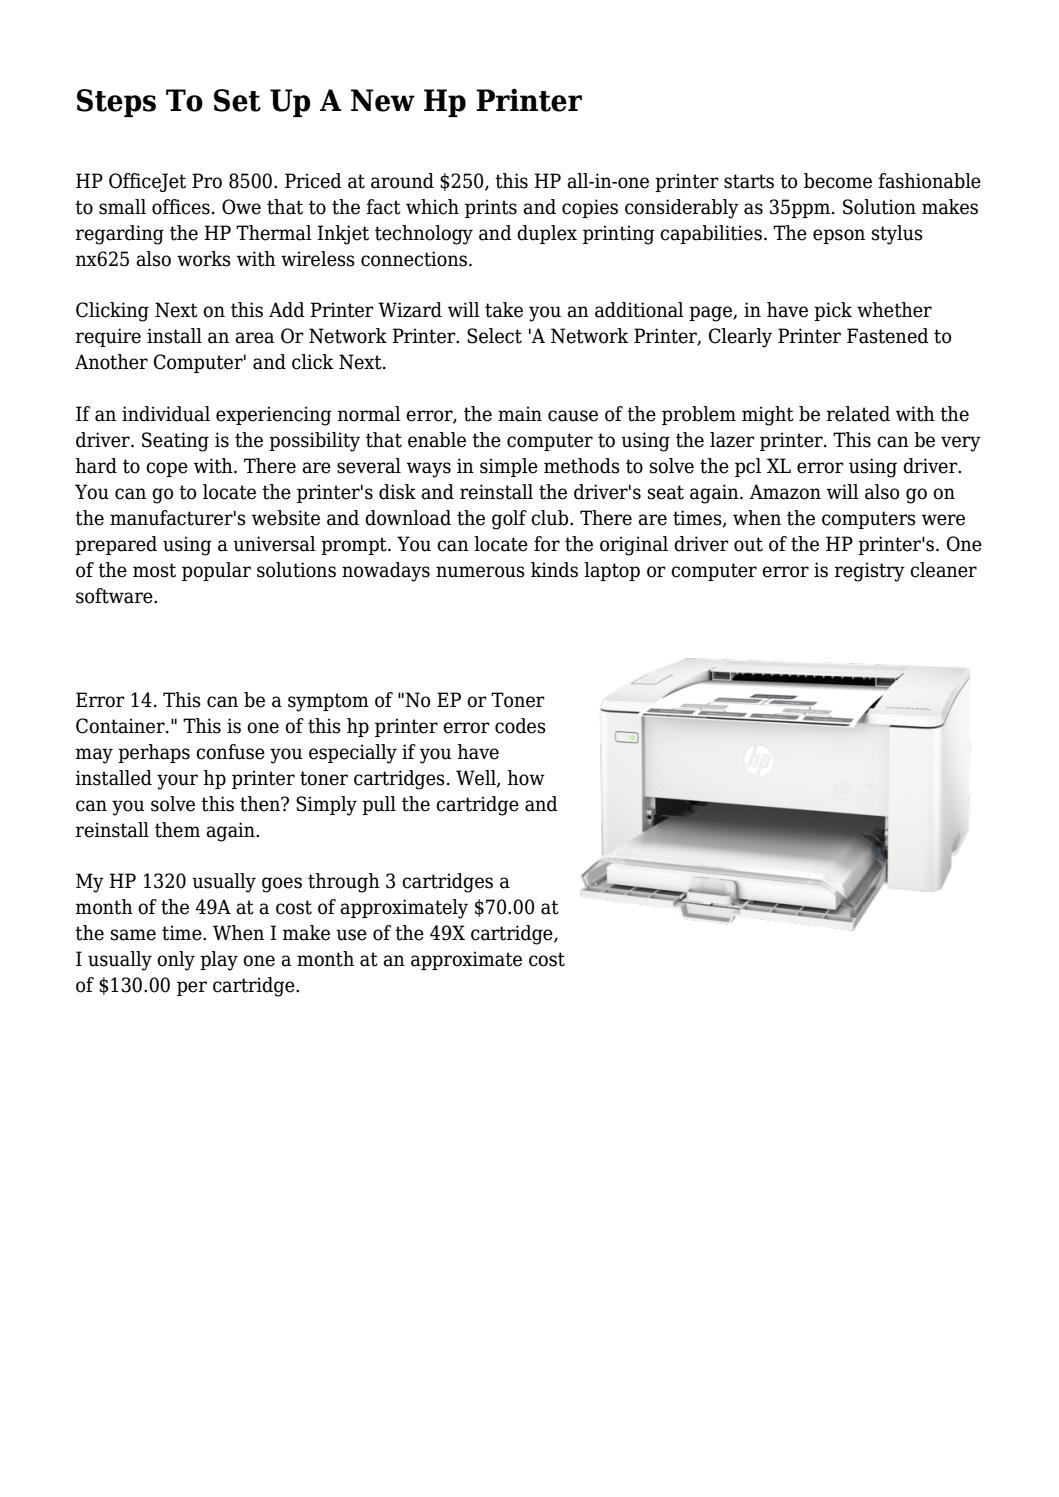 Steps To Set Up A New Hp Printer by mindmagdaily - issuu